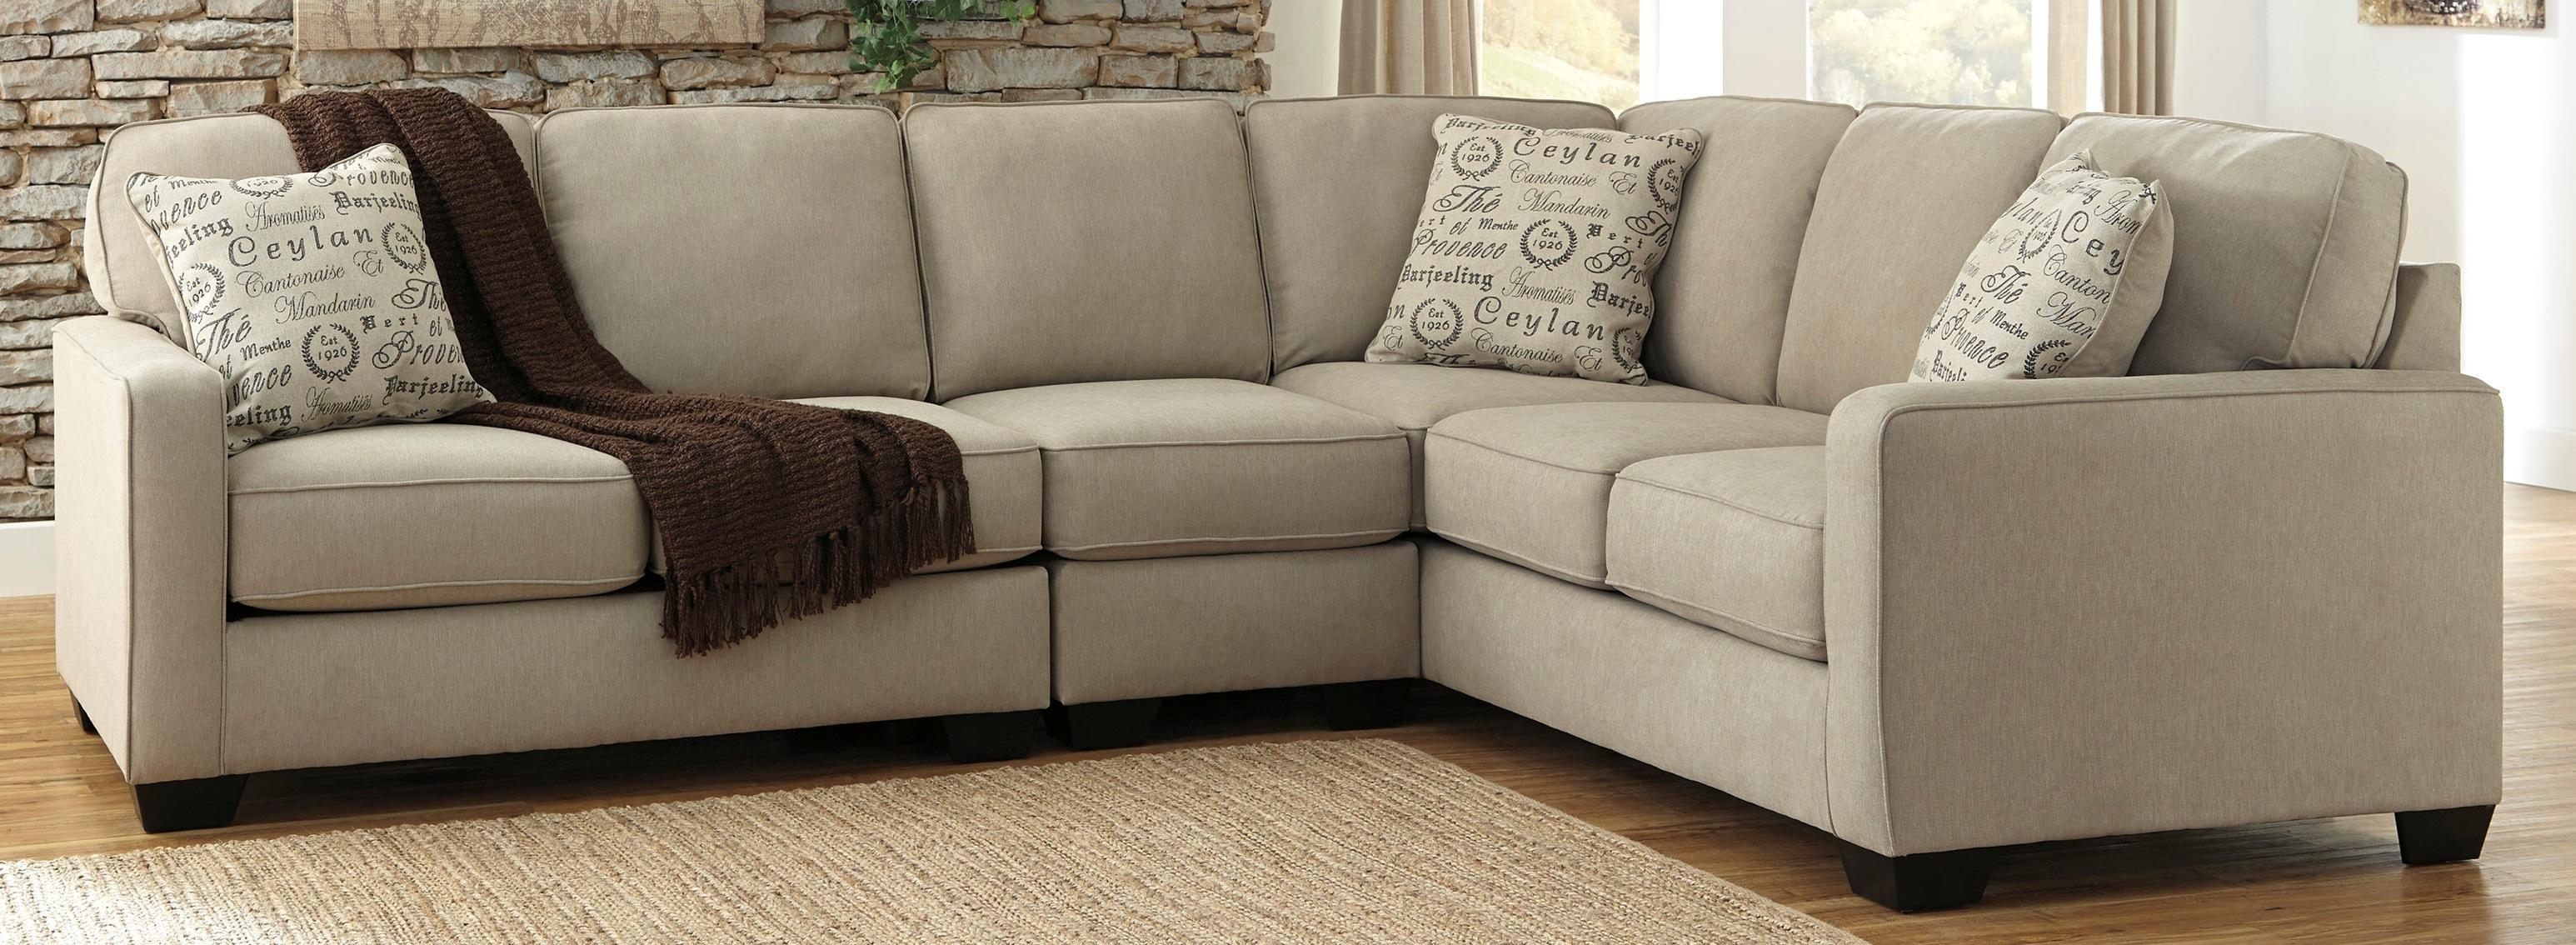 Project Ideas Ashley Furniture Small Sectional Beautiful Design Inside Ashley Furniture Grenada Sectional (Image 12 of 15)